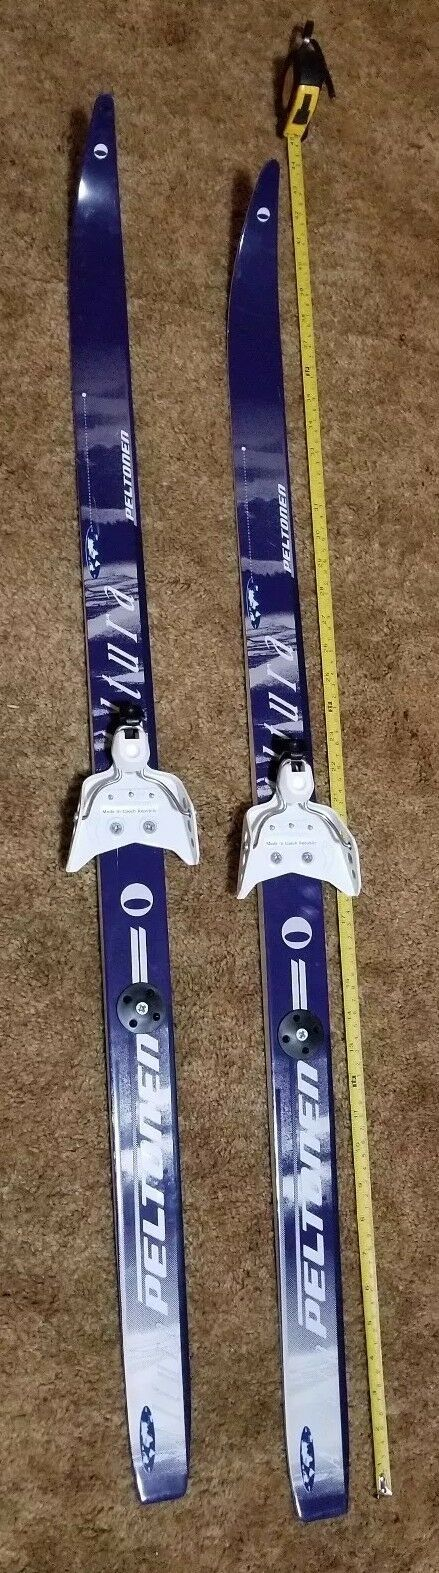 PELTONEN Altura  Touring Youth XC Cross Country 110cm Skis Nordic Norm 75mm  free and fast delivery available